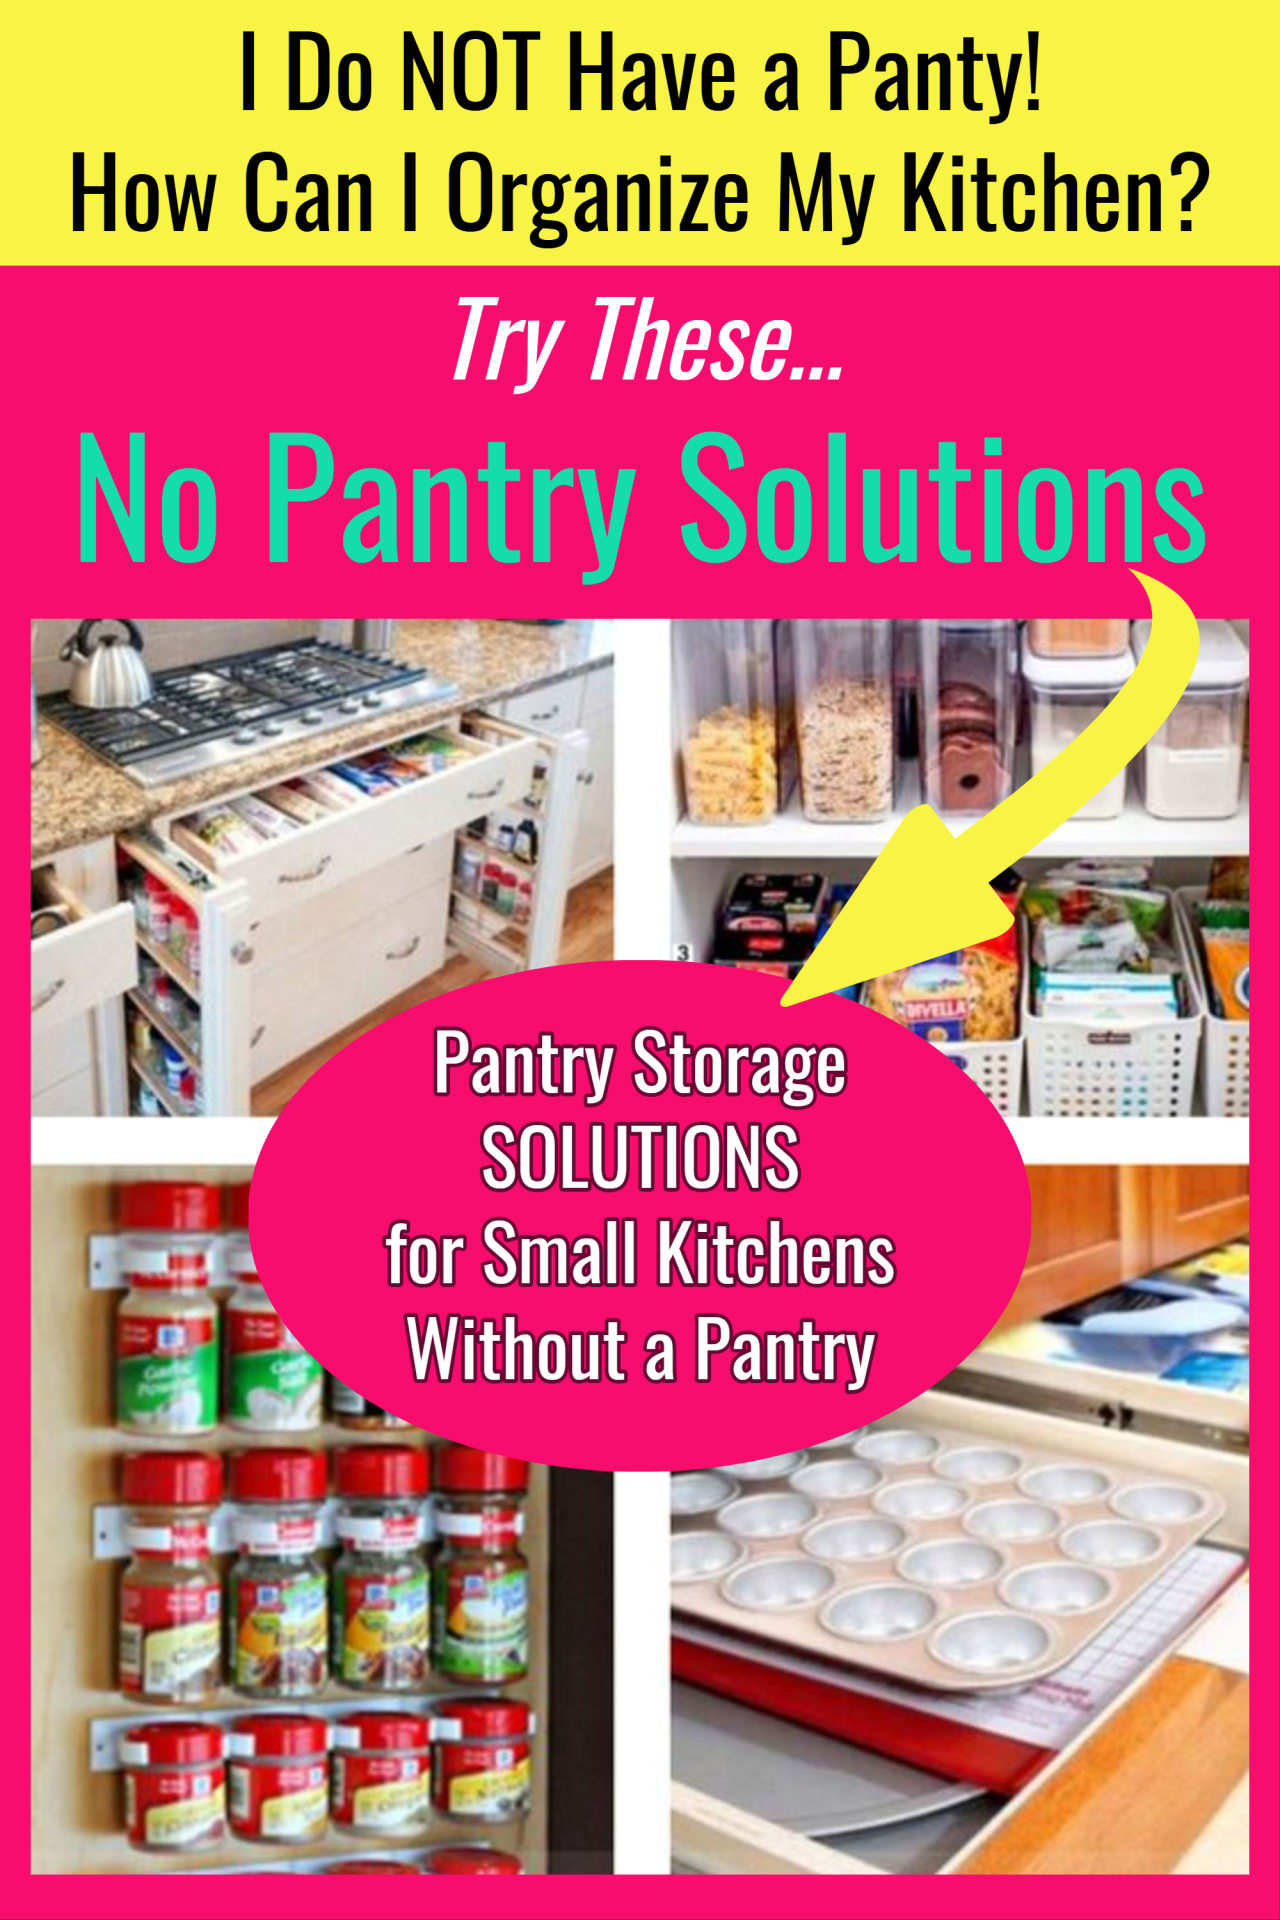 Kitchen pantry organization hacks for when you do NOT have a kitchen pantry area. Wish you had a small kitchen pantry, but you need pantry alternatives?  Here's Help! No pantry ideas for small kitchens, apartment kitchen and other tiny kitchens that need no pantry solutions.  If you need pantry ideas for small spaces BUT you do NOT have a pantry in your kitchen, these are the kitchen storage and organization ideas for you!  Small kitchen solutions for the win!